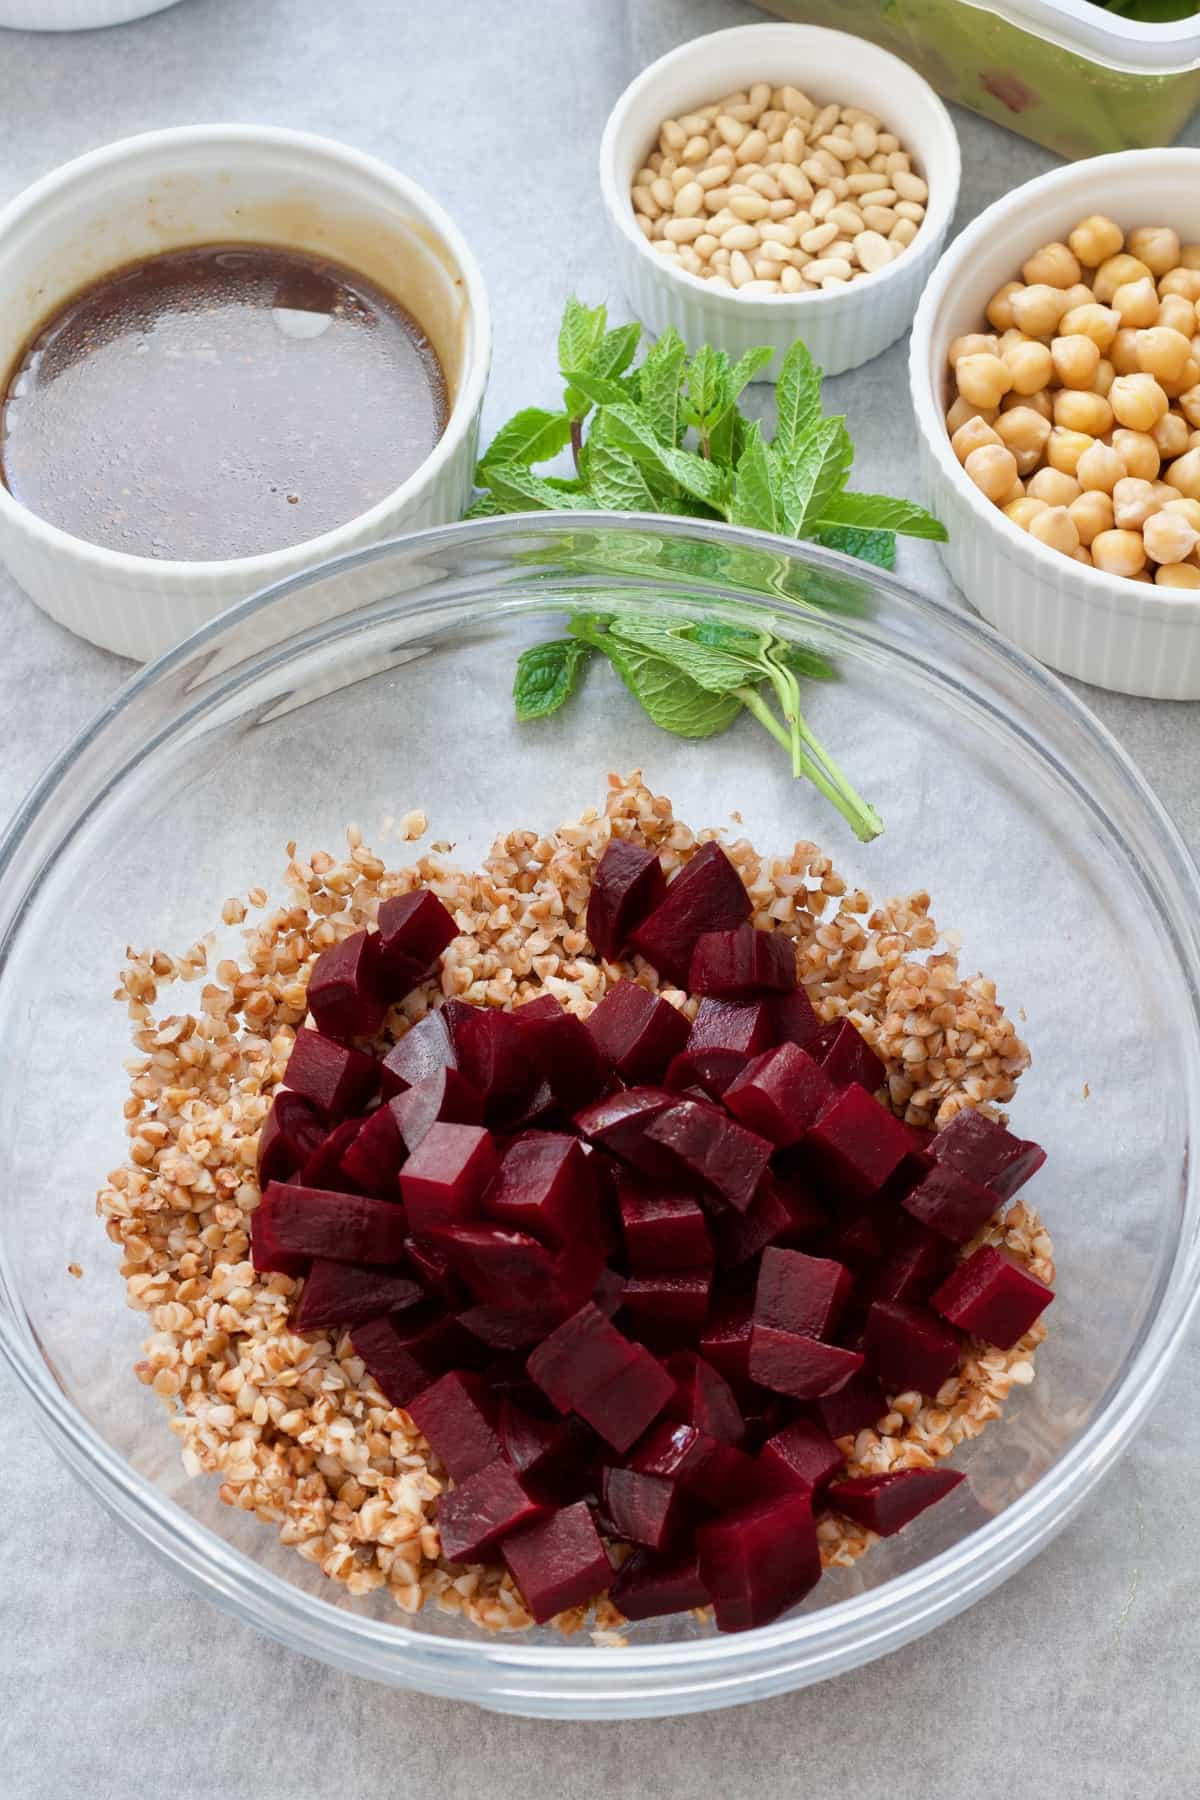 Bowl with buckwheat and cubed beetroot.